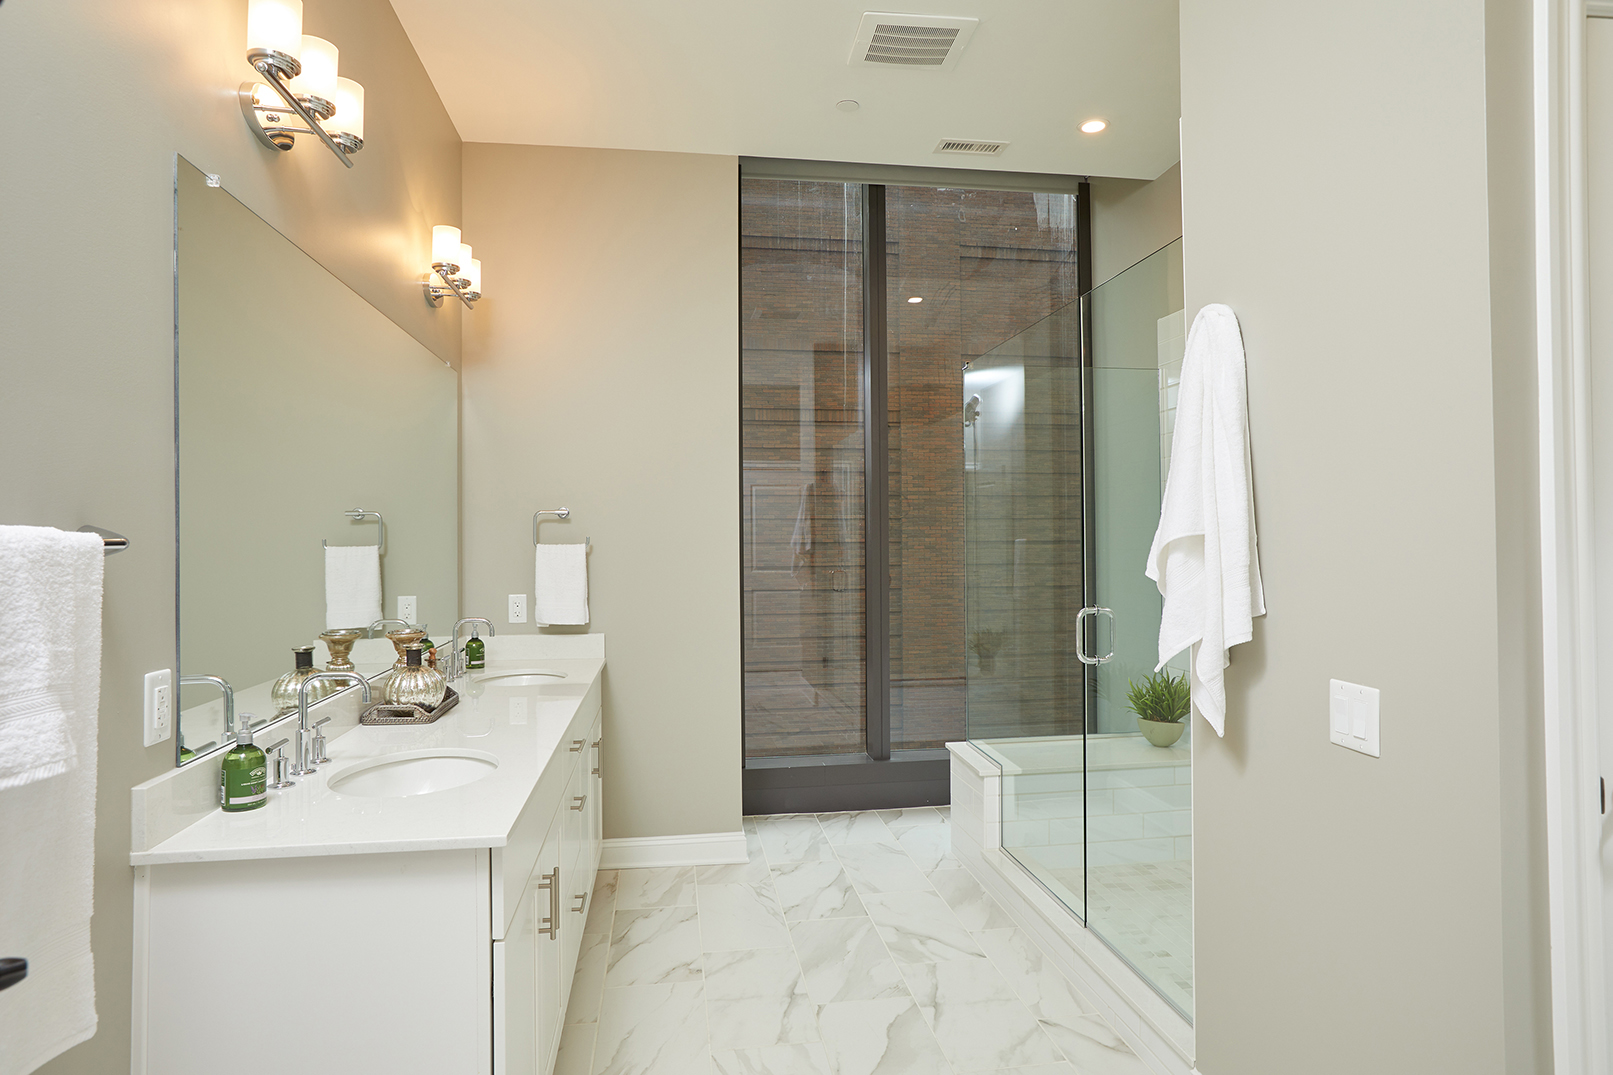 upscale bathroom interior of city apartment